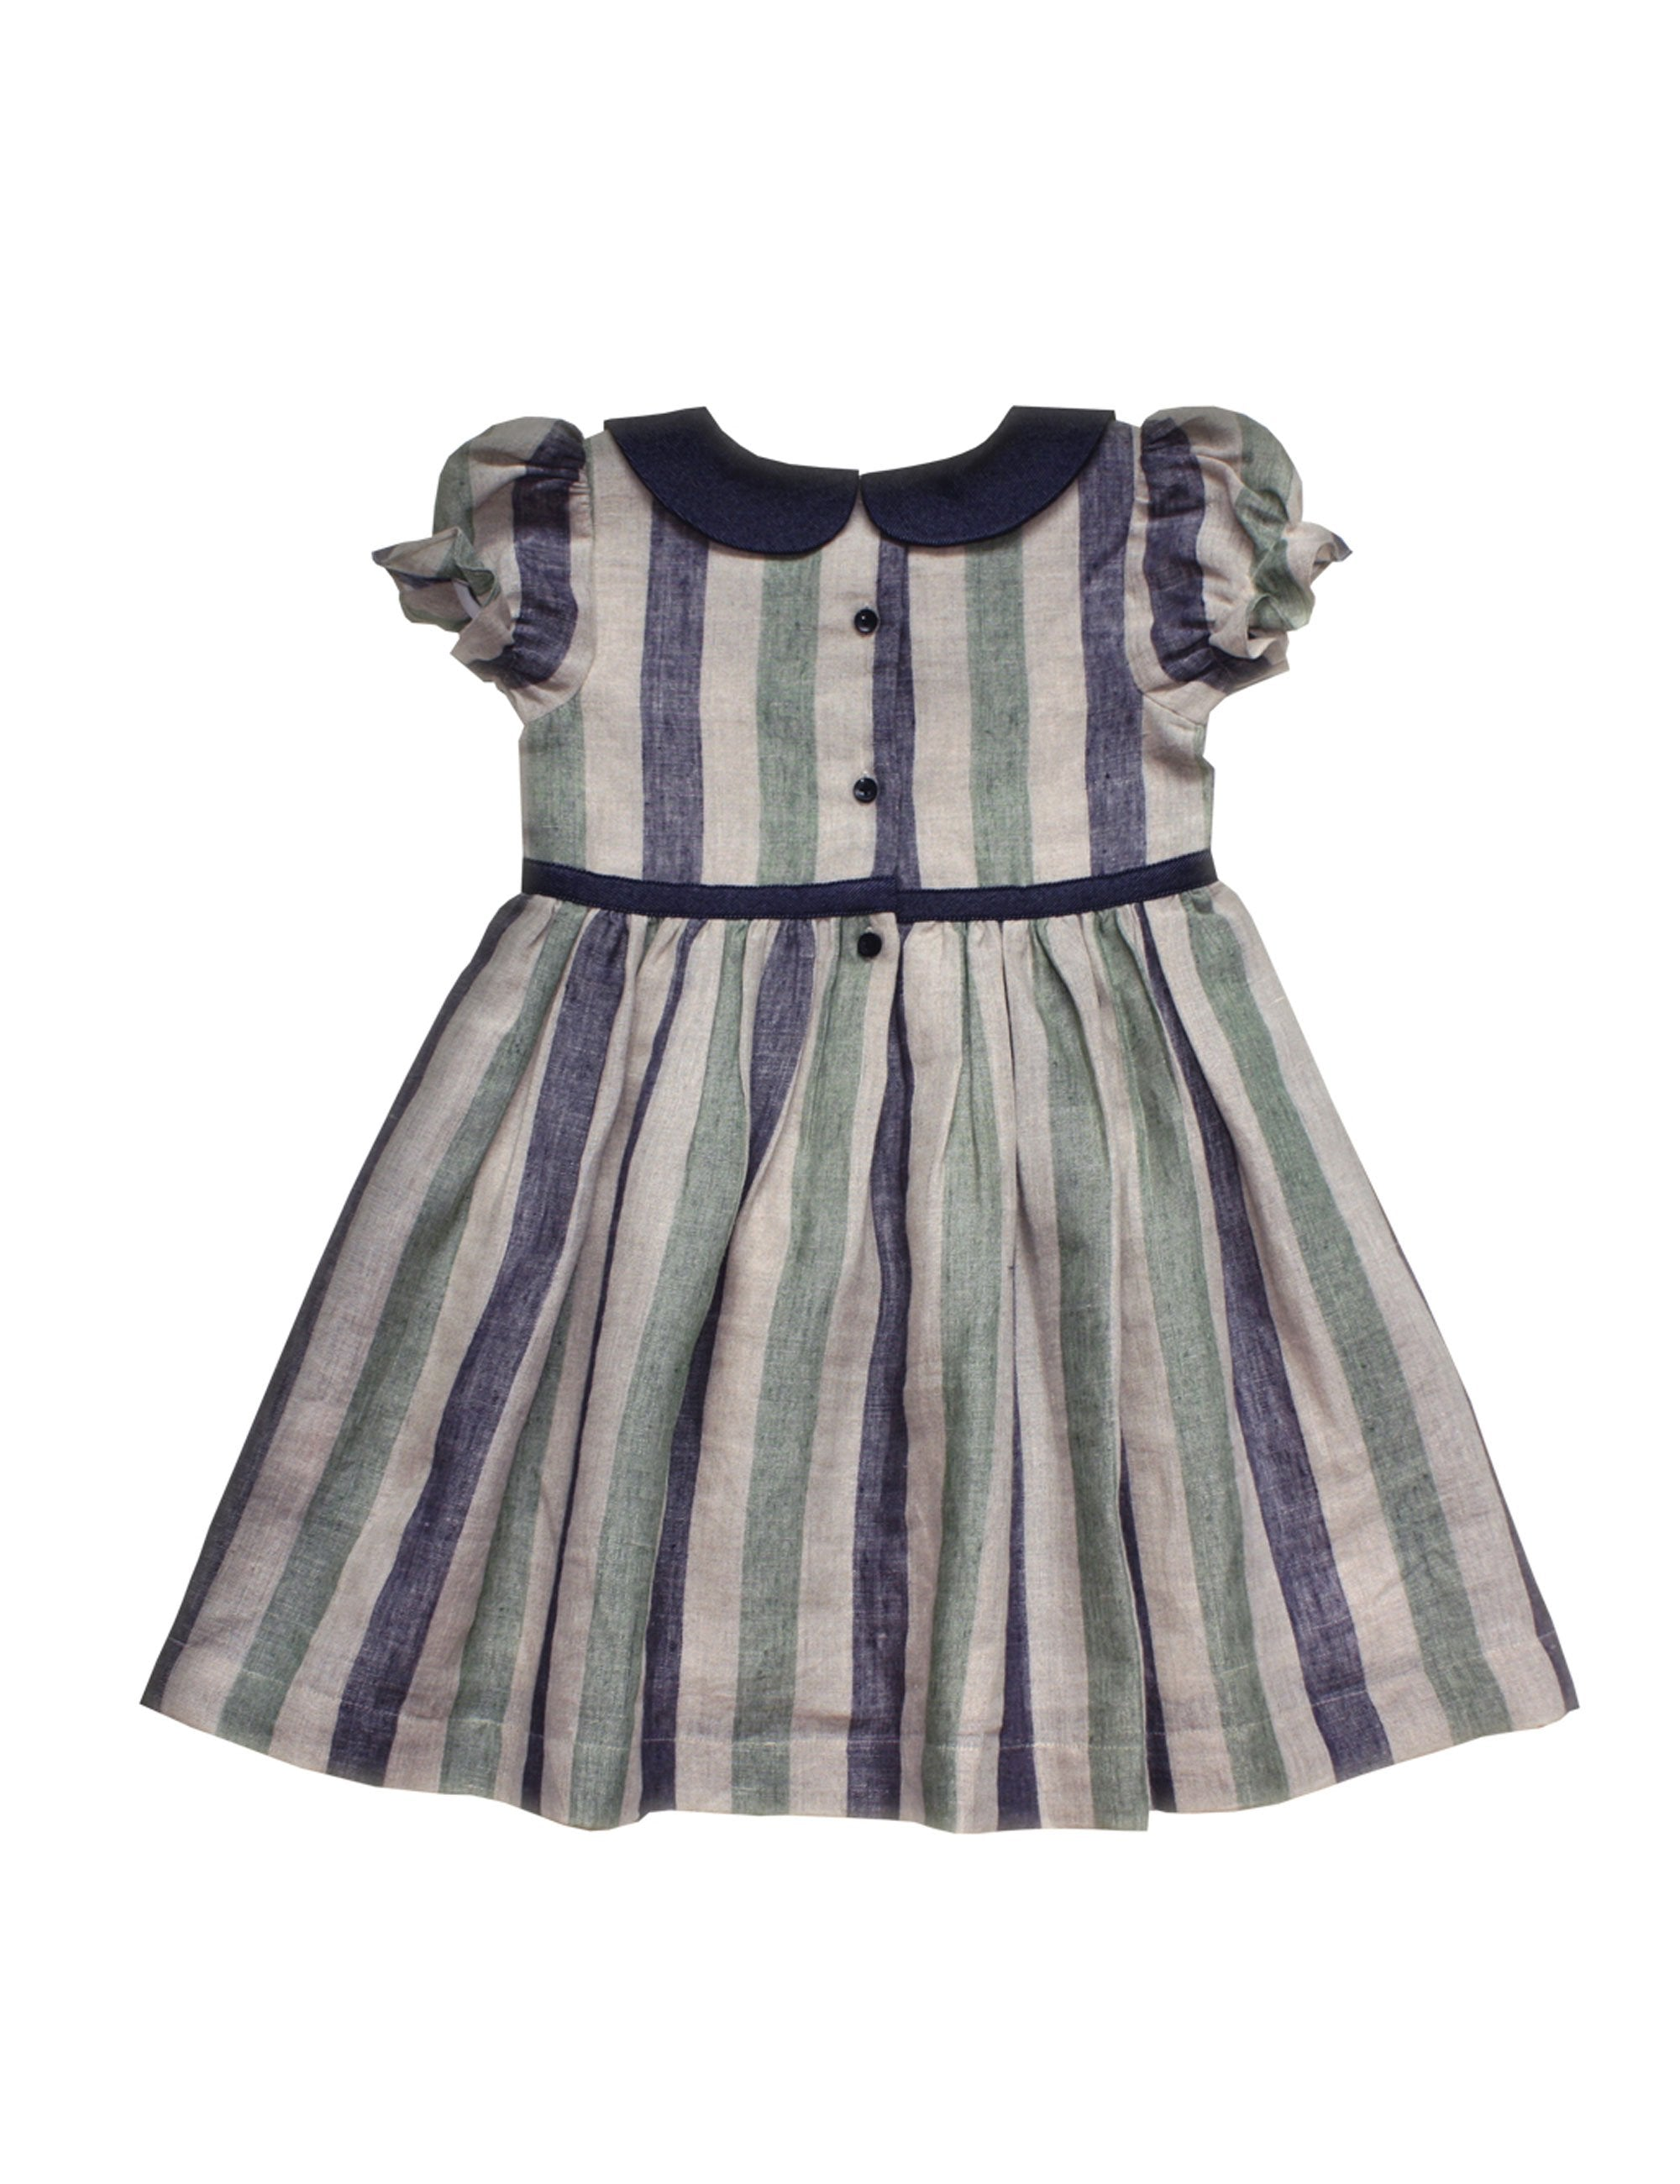 Cotton Stripe Dress in Blue Colour for Girls